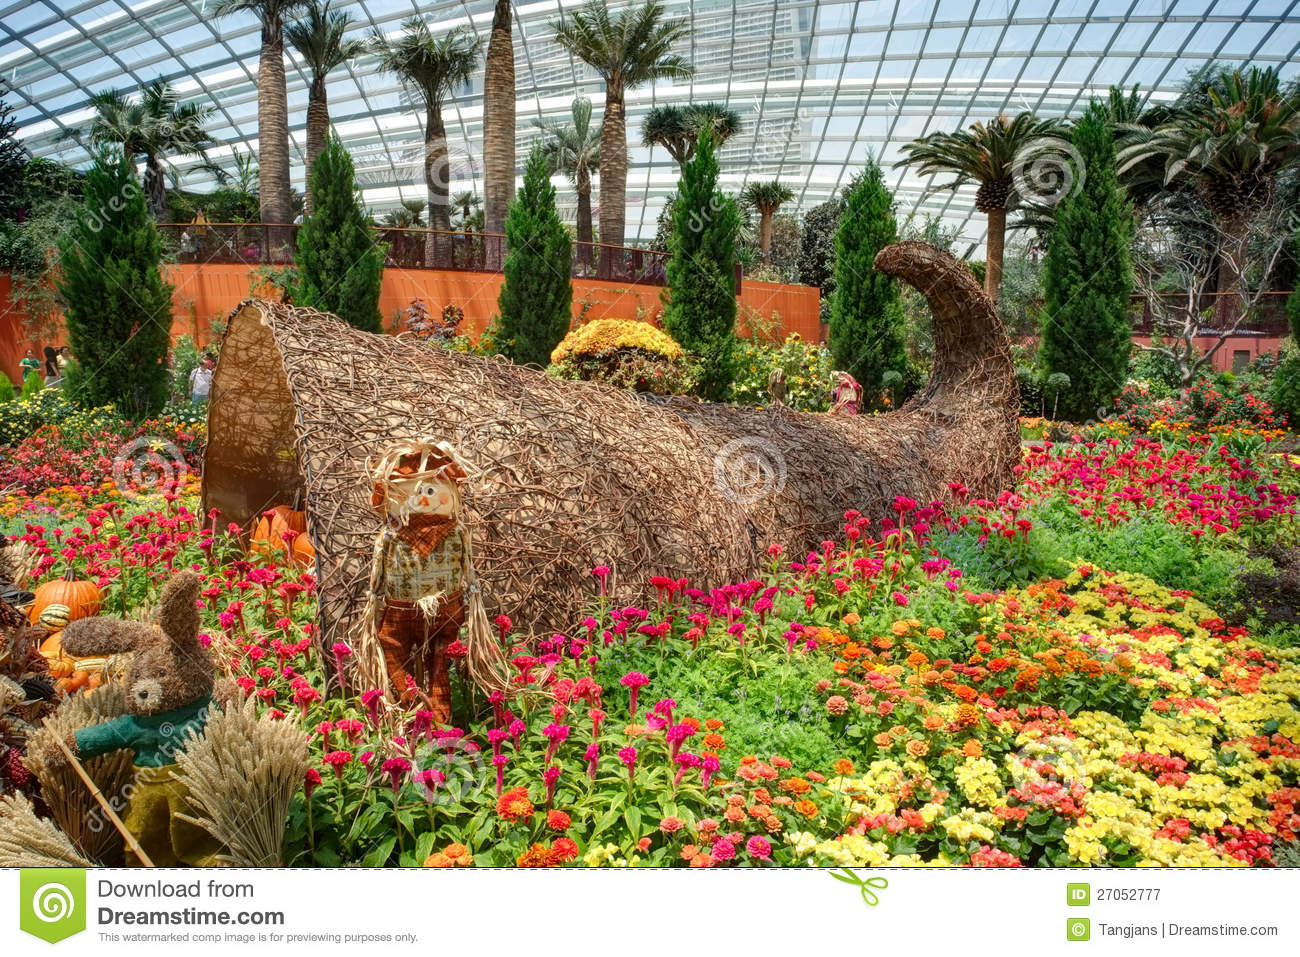 Garden By The Bay Flower Dome flower dome, gardensthe bay 3 editorial stock photo - image